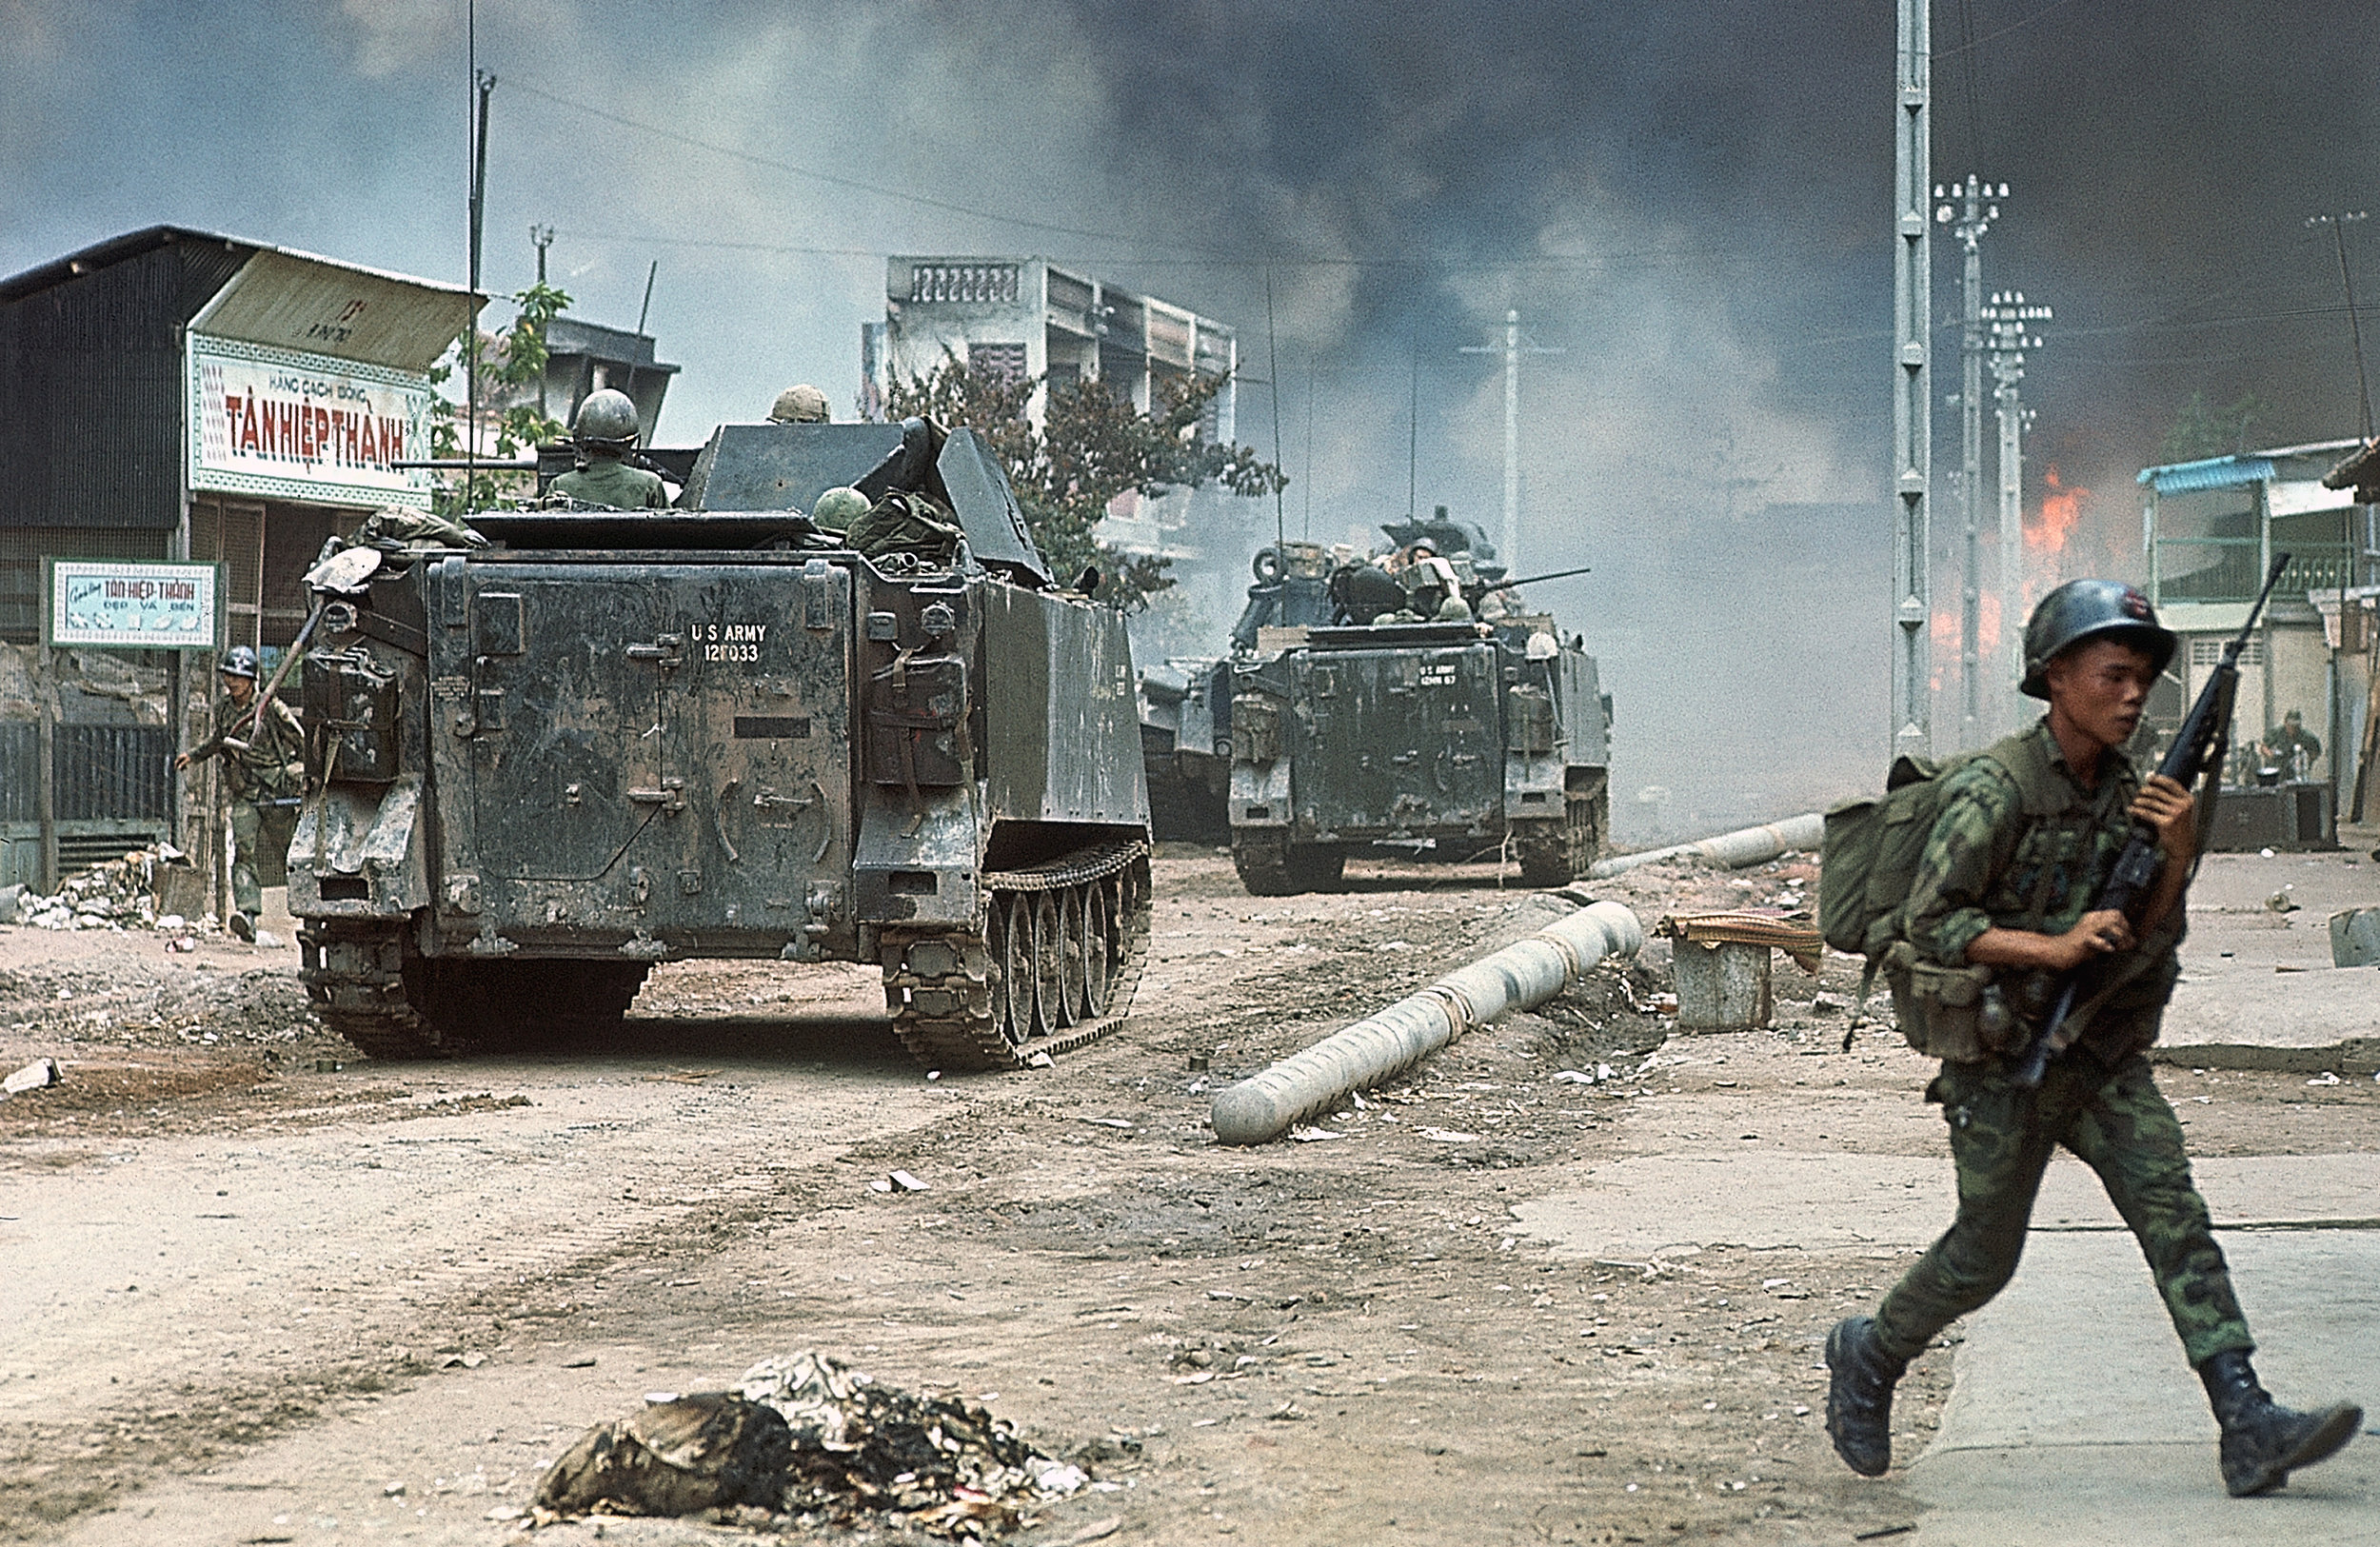 Saigon saw its fair share of fighting during the war, most notably during the 1968 Tet Offensive. Here, ARVN M113 APCs are clearing streets in the Cholon district of Saigon.